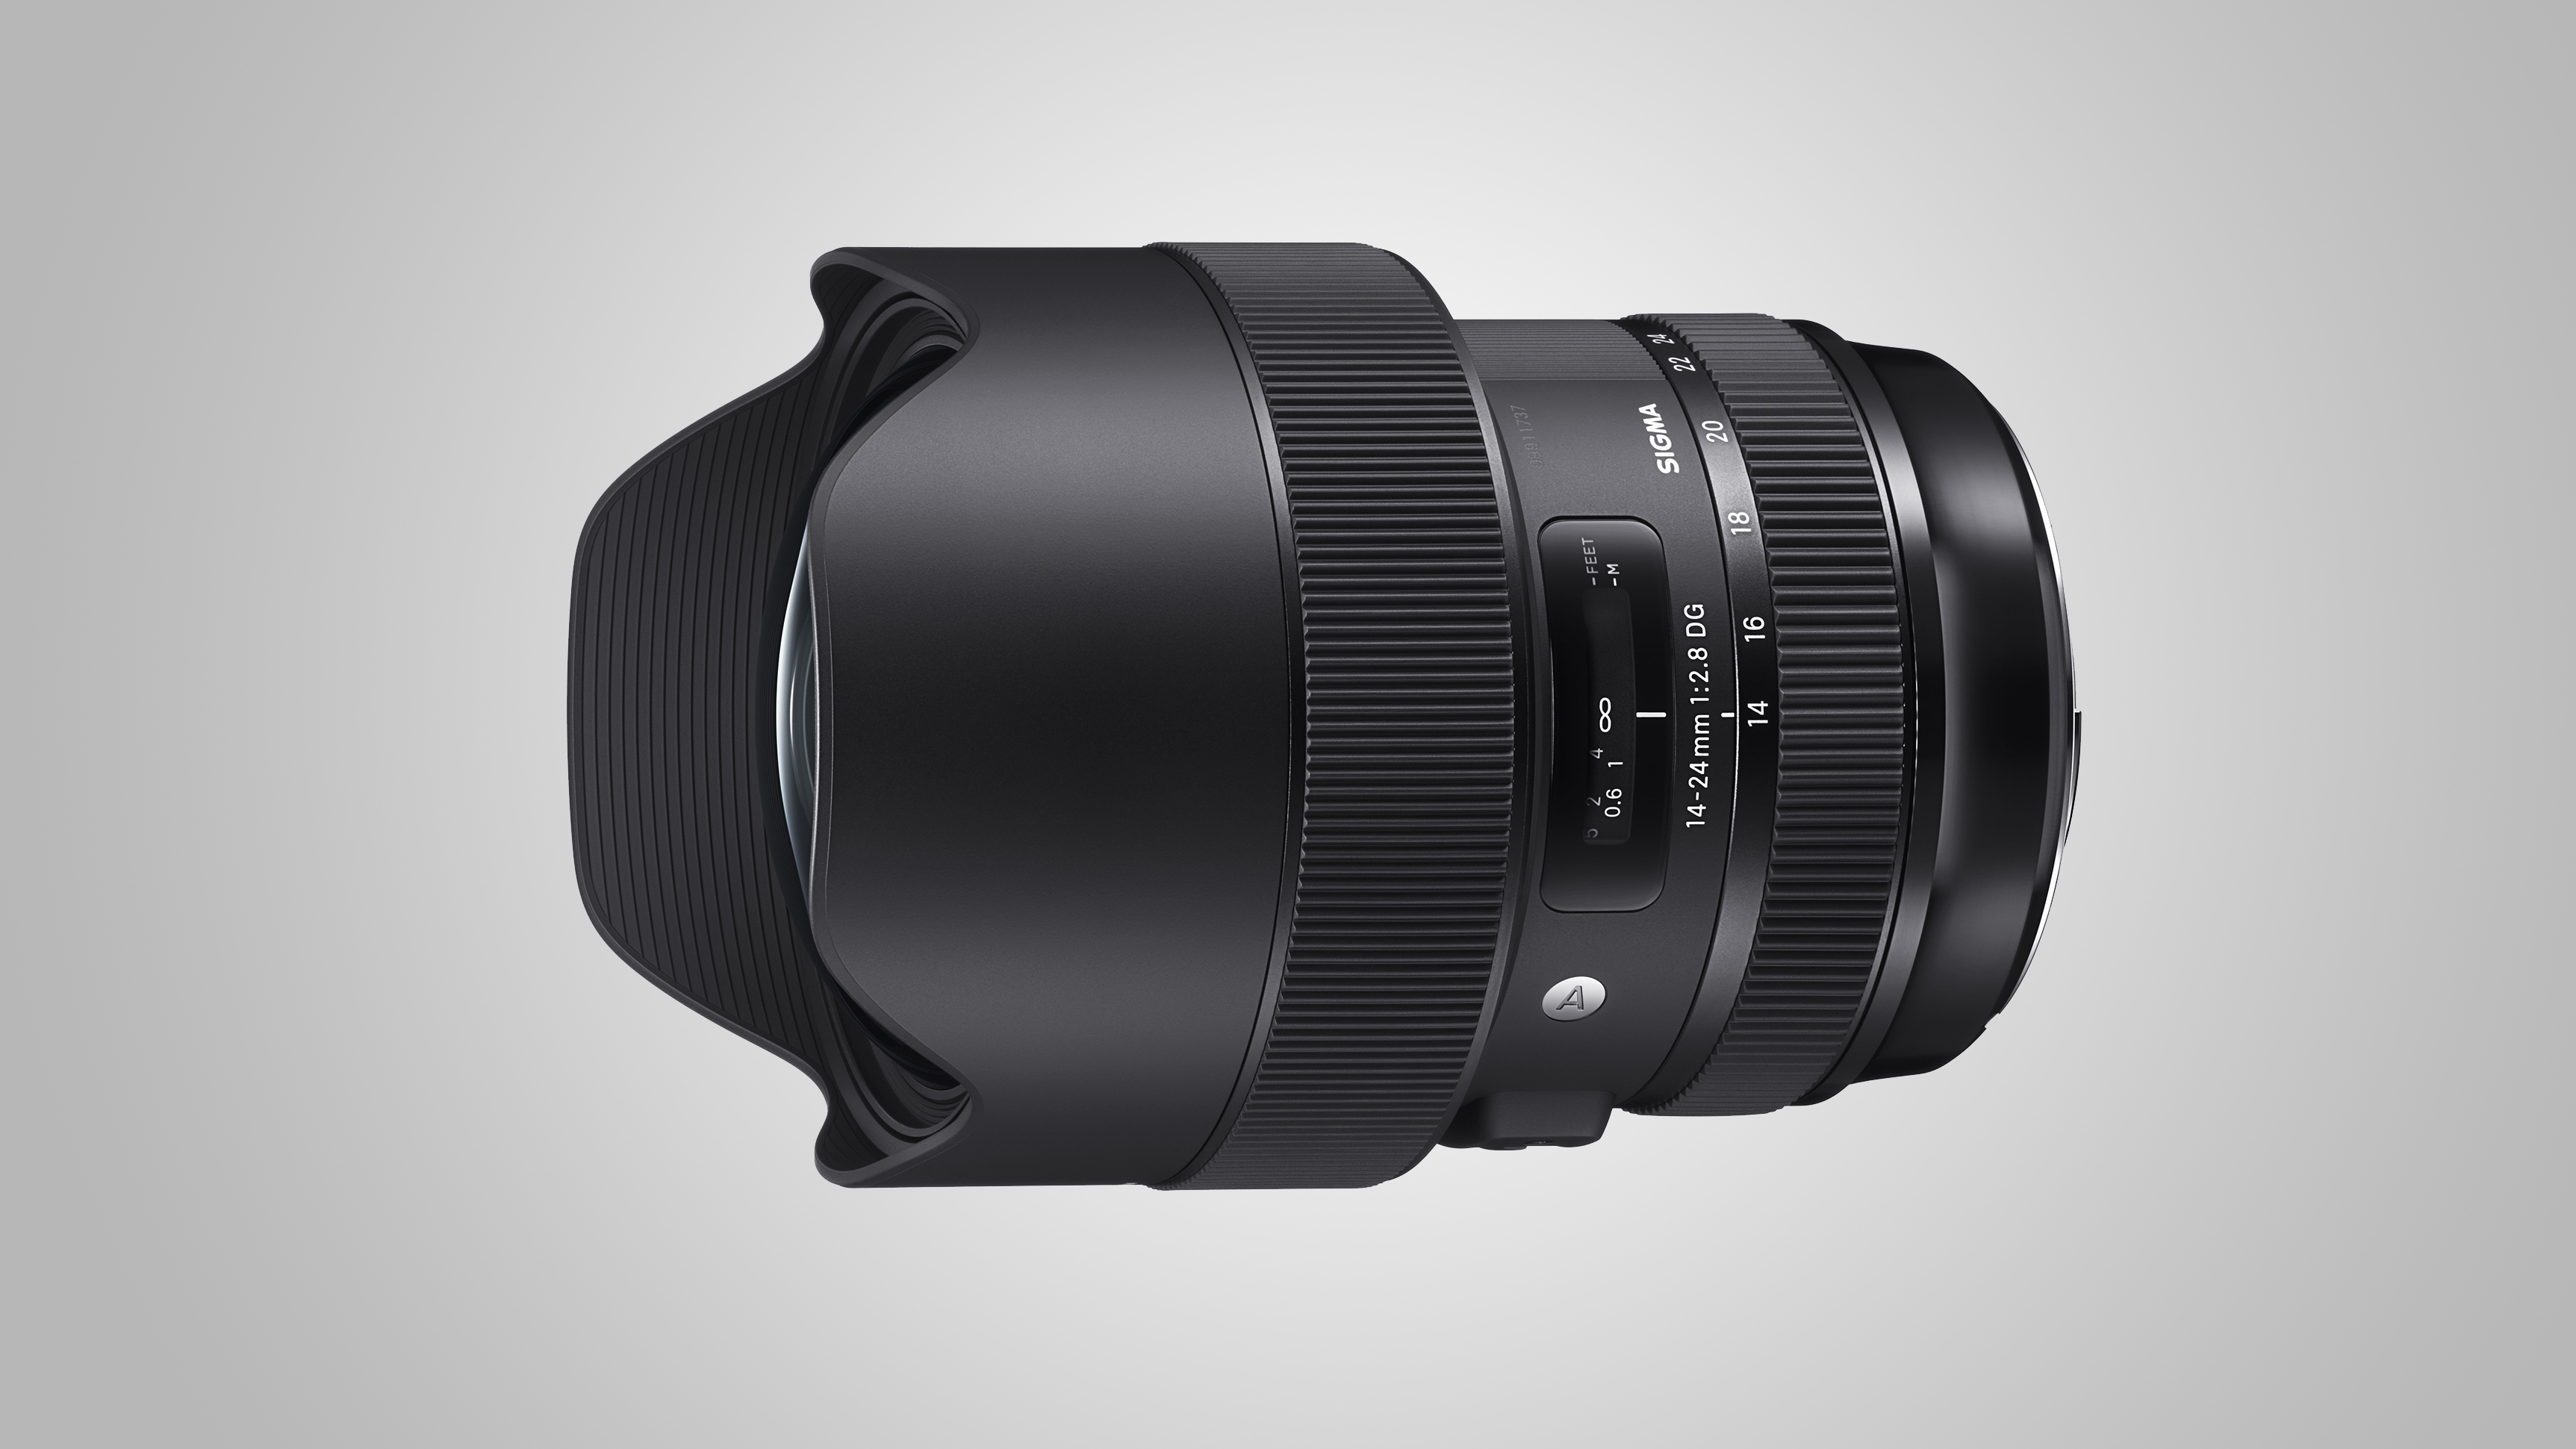 Sigma 14-24mm f/2.8 DG HSM | Art